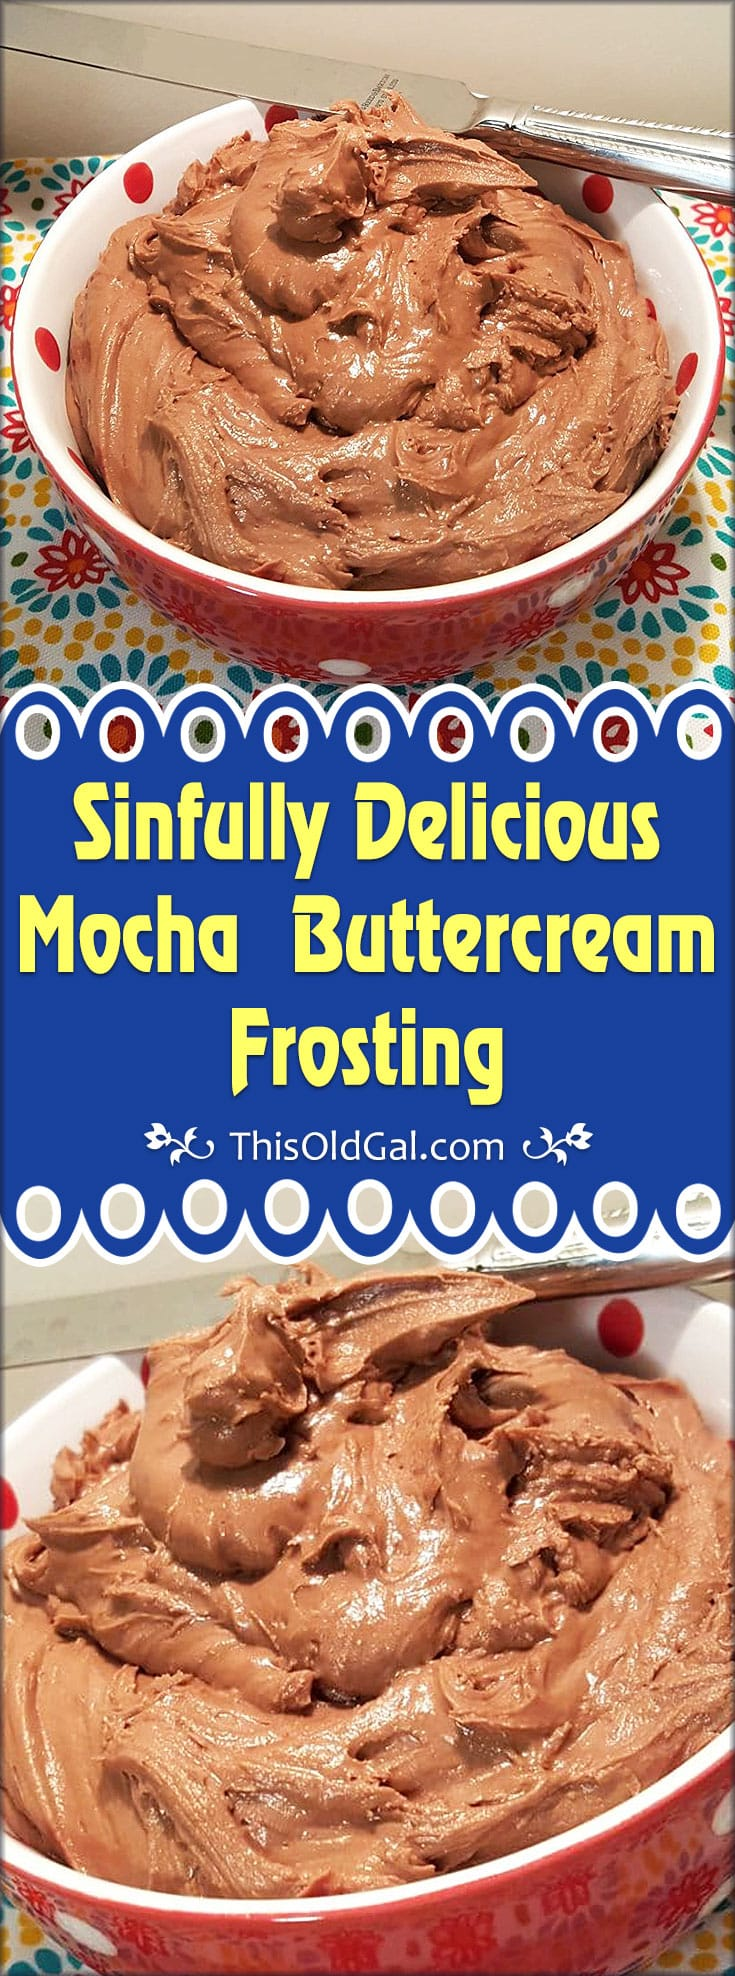 Sinfully Delicious Mocha Buttercream Frosting Recipe